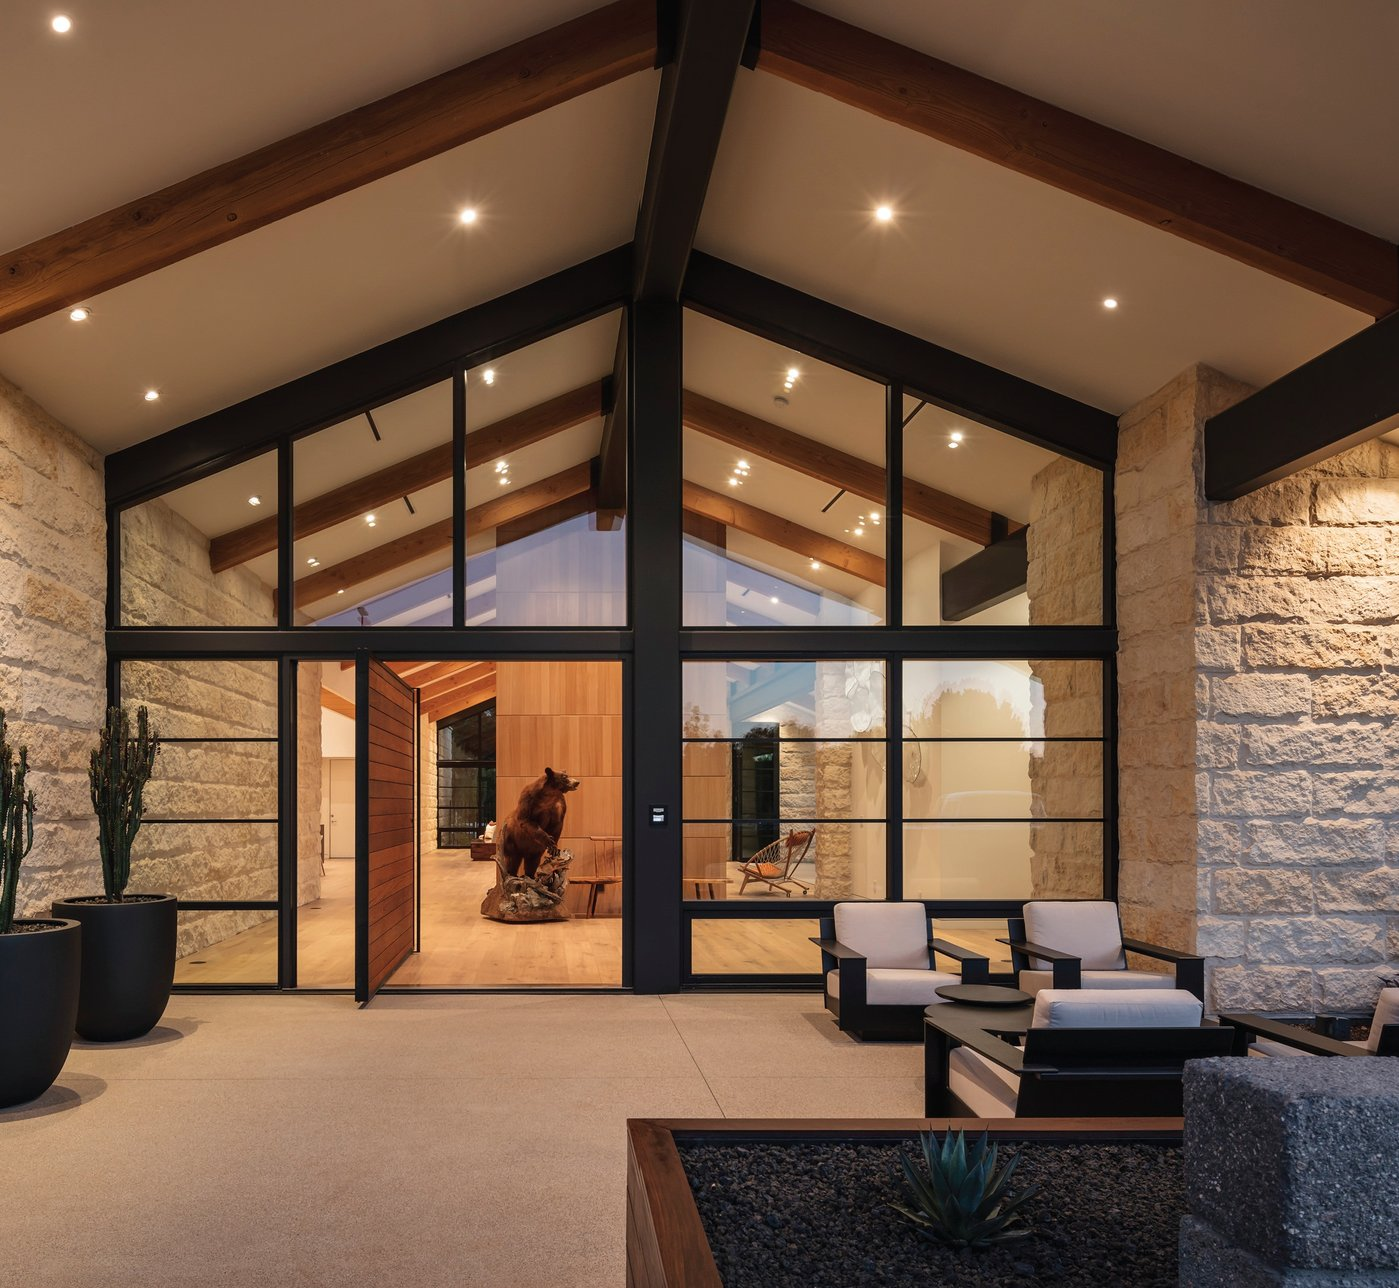 The main entry door is an 8-foot-by-8-foot pivot door made of steel and ipe wood. Once past the foyer, the house opens up to the main great room for entertaining. Photographed by Roehner   Ryan Photography